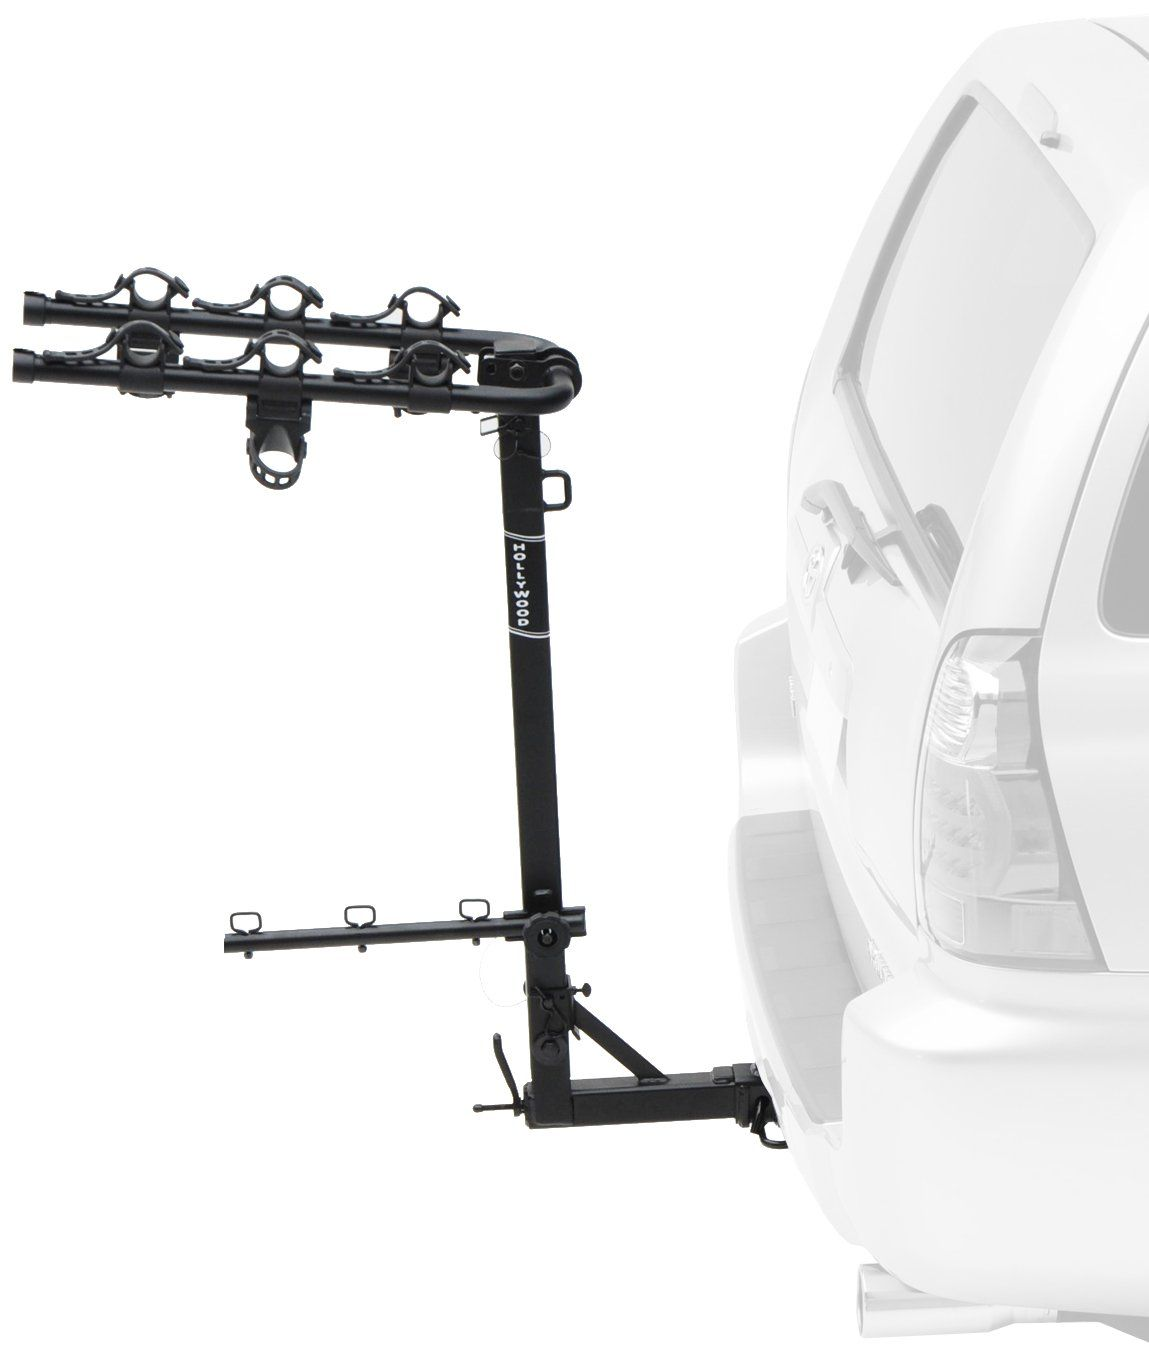 Hollywood Racks Hr310 Road Runner 3 Bike Hitch Mount Rack 1 25 Inch 2 Inch Receiver Carries Up To 3 Bikes And Fits 1 25 Bike Hitch Bike 4 Bike Hitch Rack